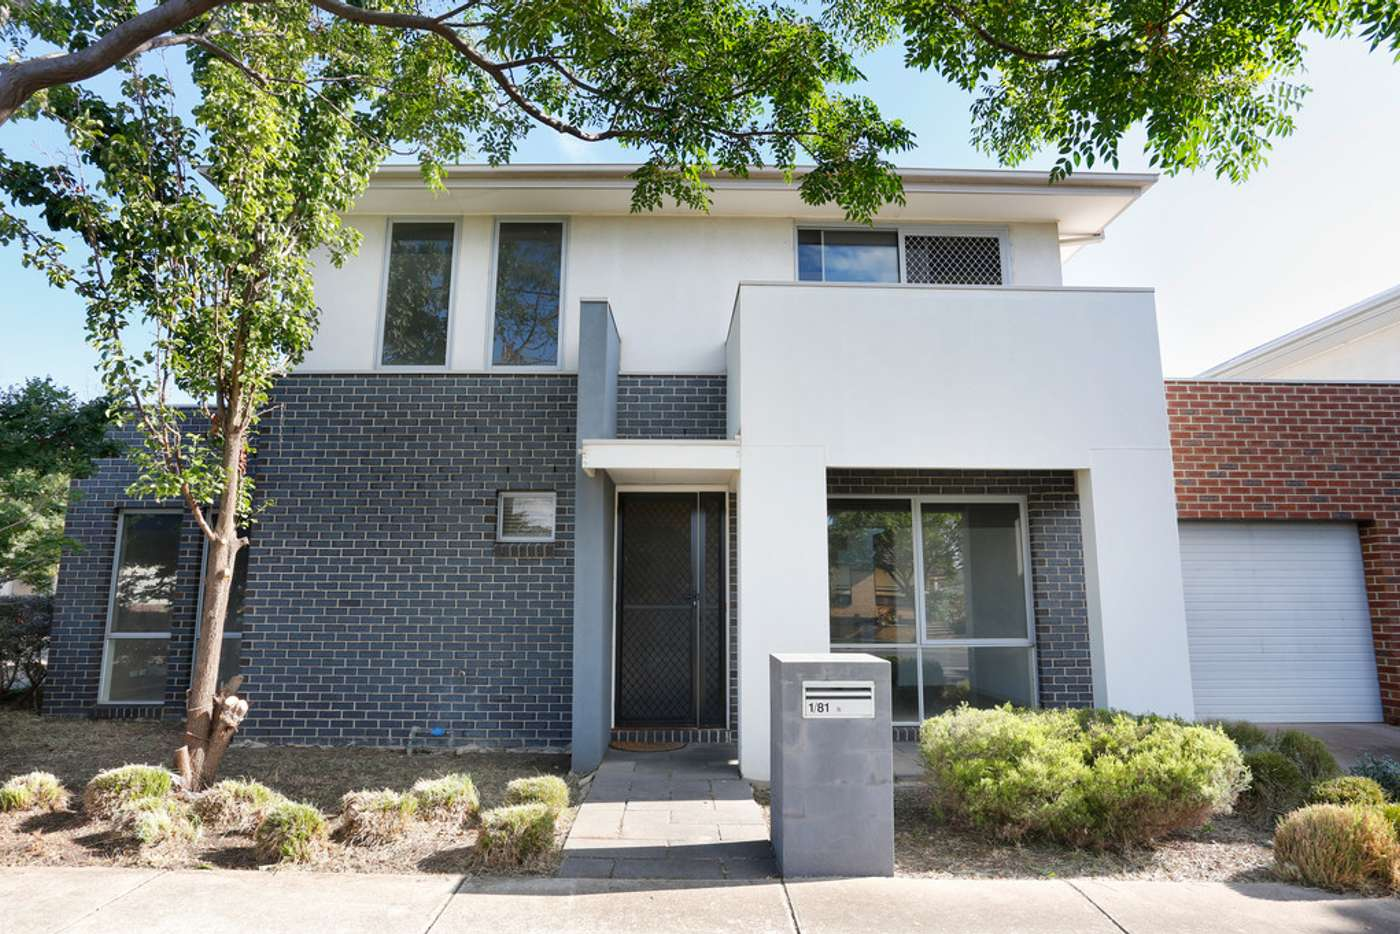 Main view of Homely townhouse listing, 1/81 Mitchell Street, Maidstone VIC 3012